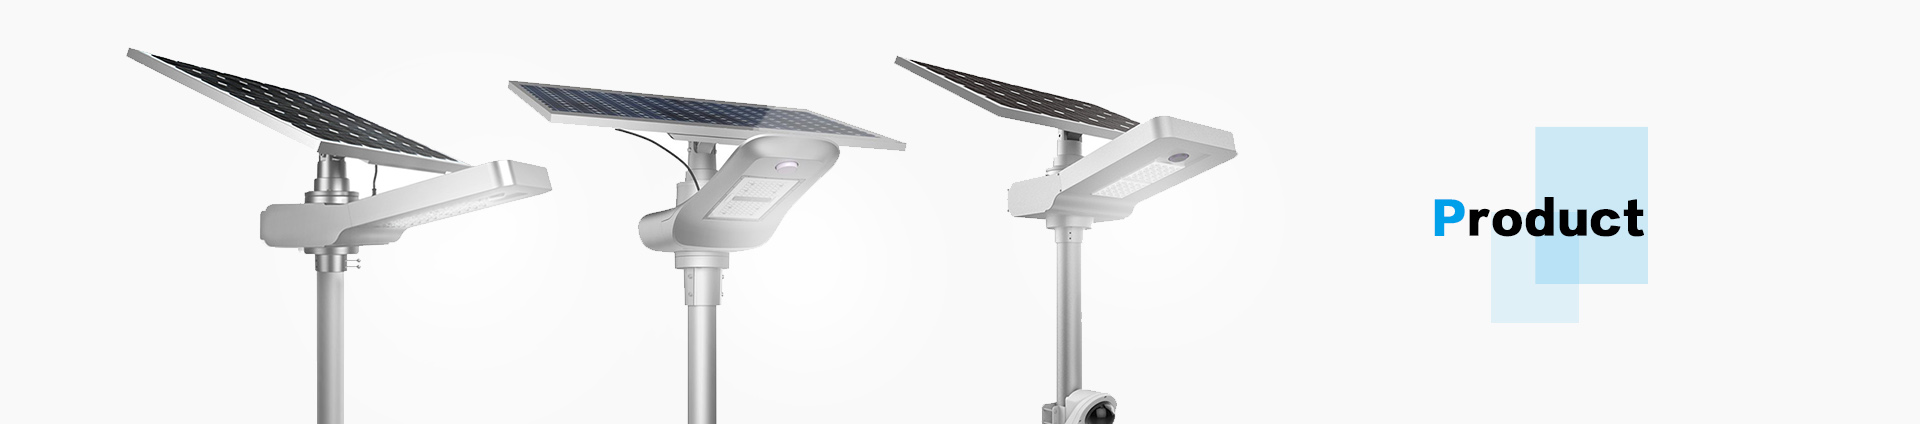 High Brightness 154 LED Solar Street Light-Road Smart